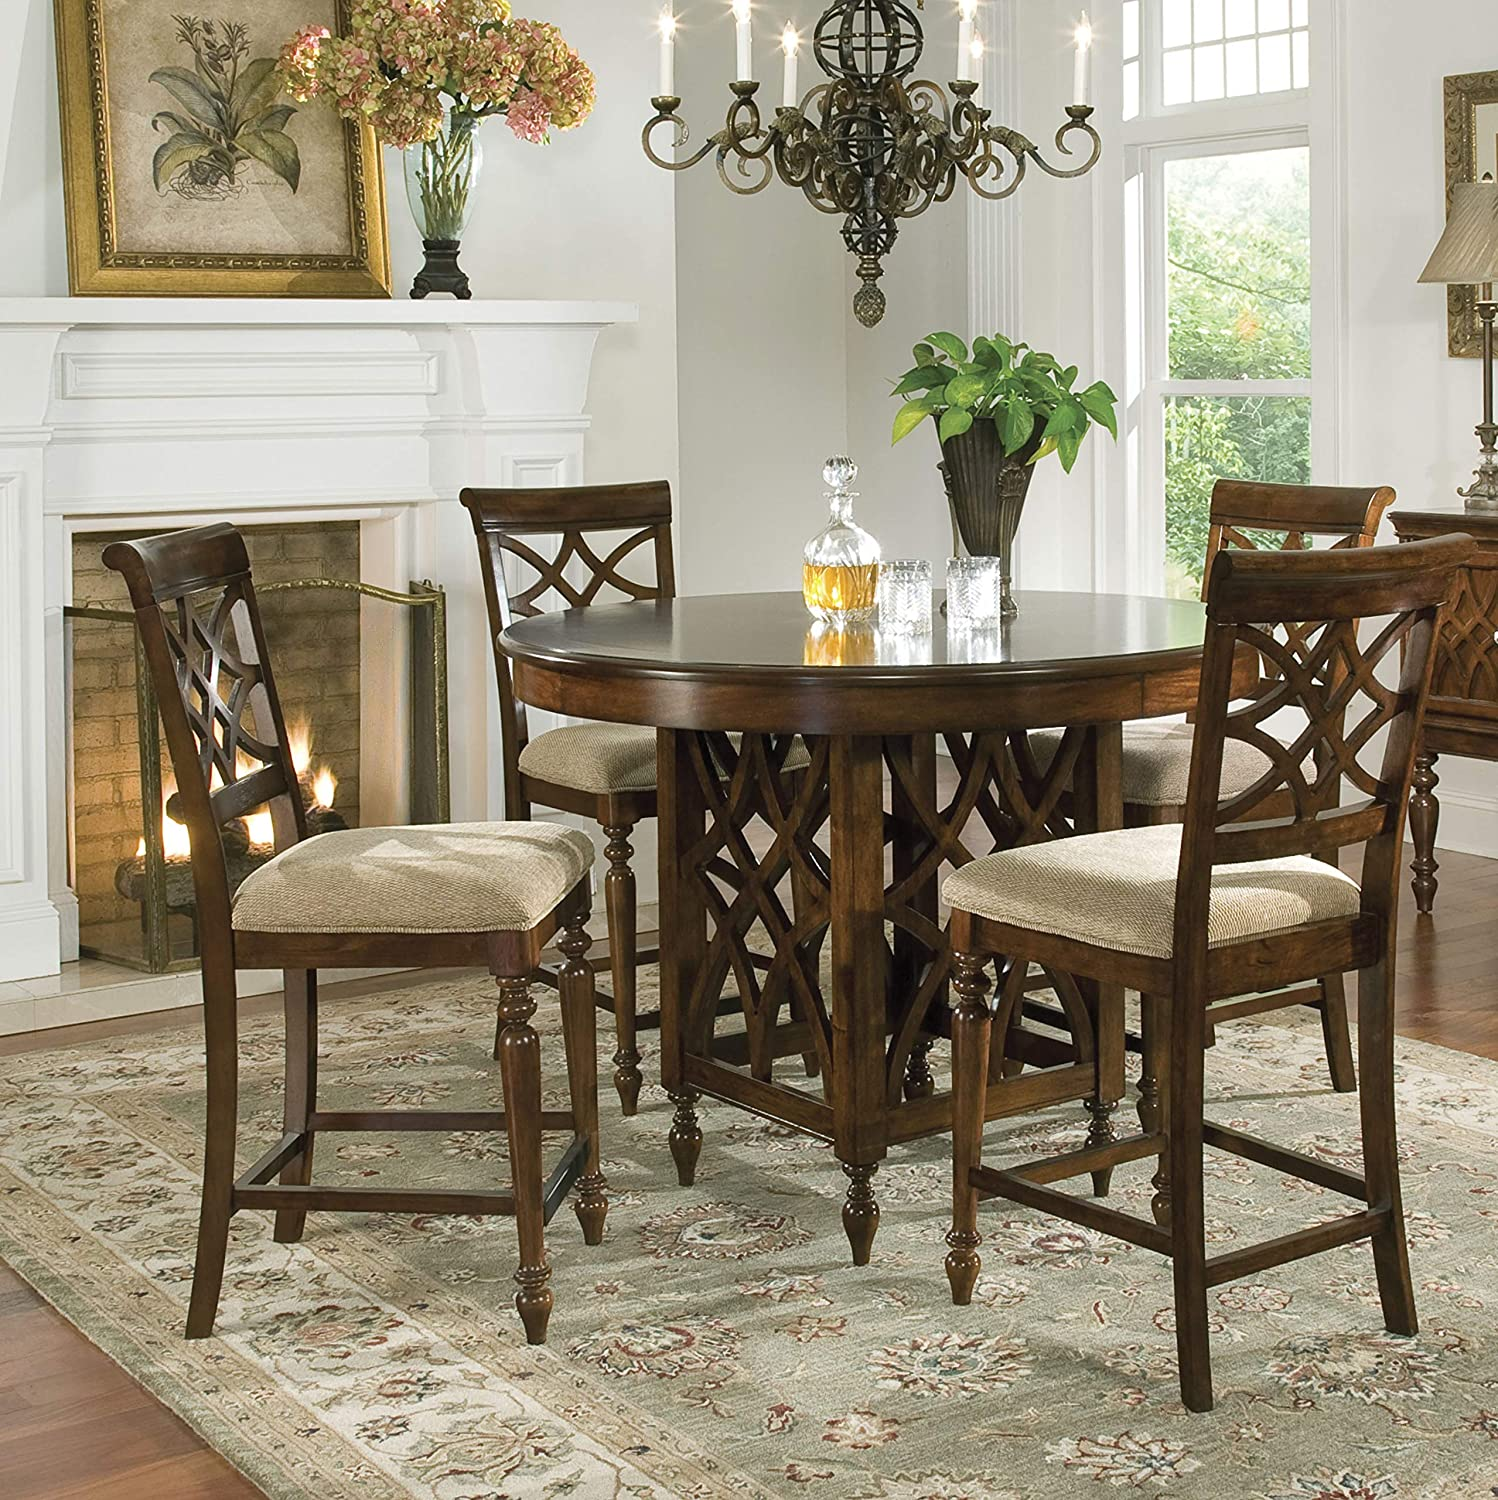 FurnitureMaxx Windfield Rich Brown Cherry Finish Counter Height Dining Set with Table and 4 Chairs